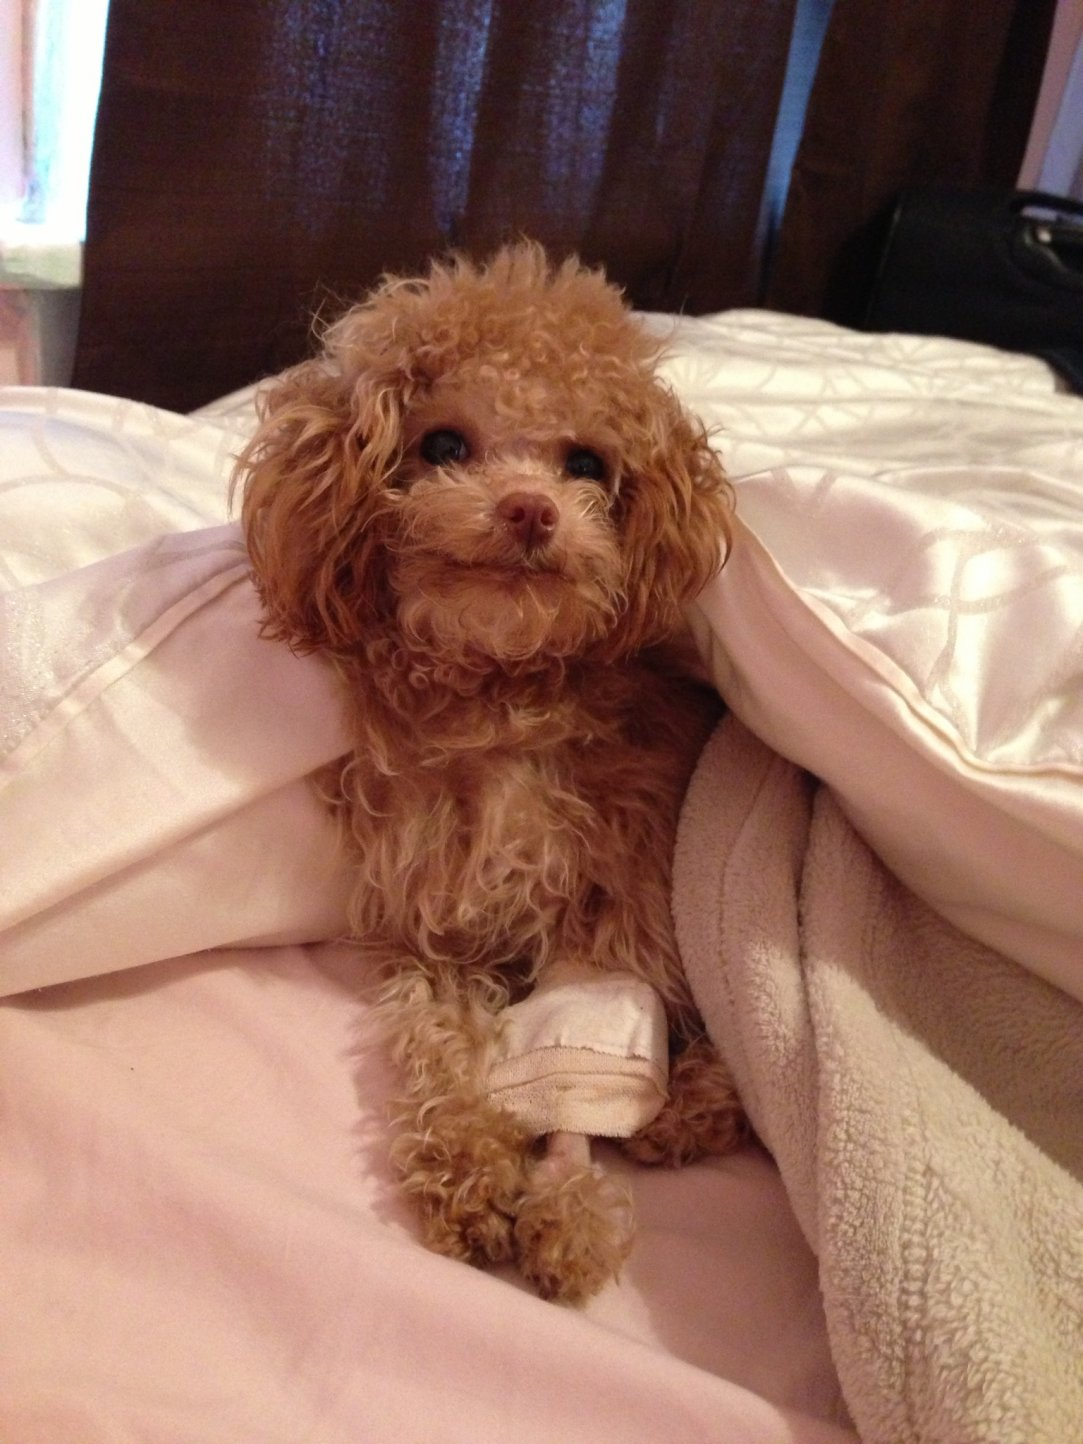 10 month old tiny toy poodle with broken leg :(-img_4562.jpg